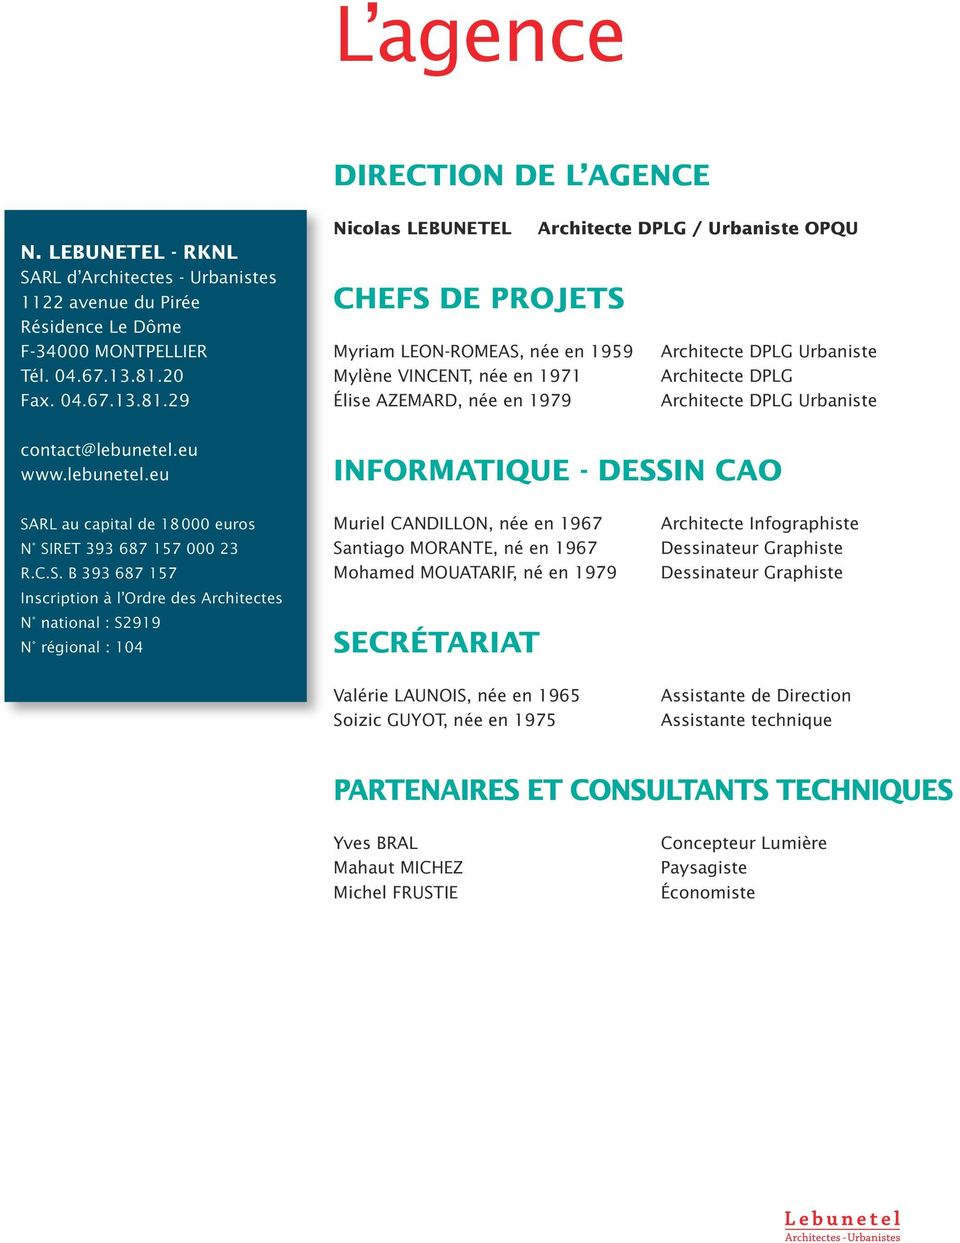 Cumulant 25 ans de projets riches et complexes de d fis for Architecte dplg definition